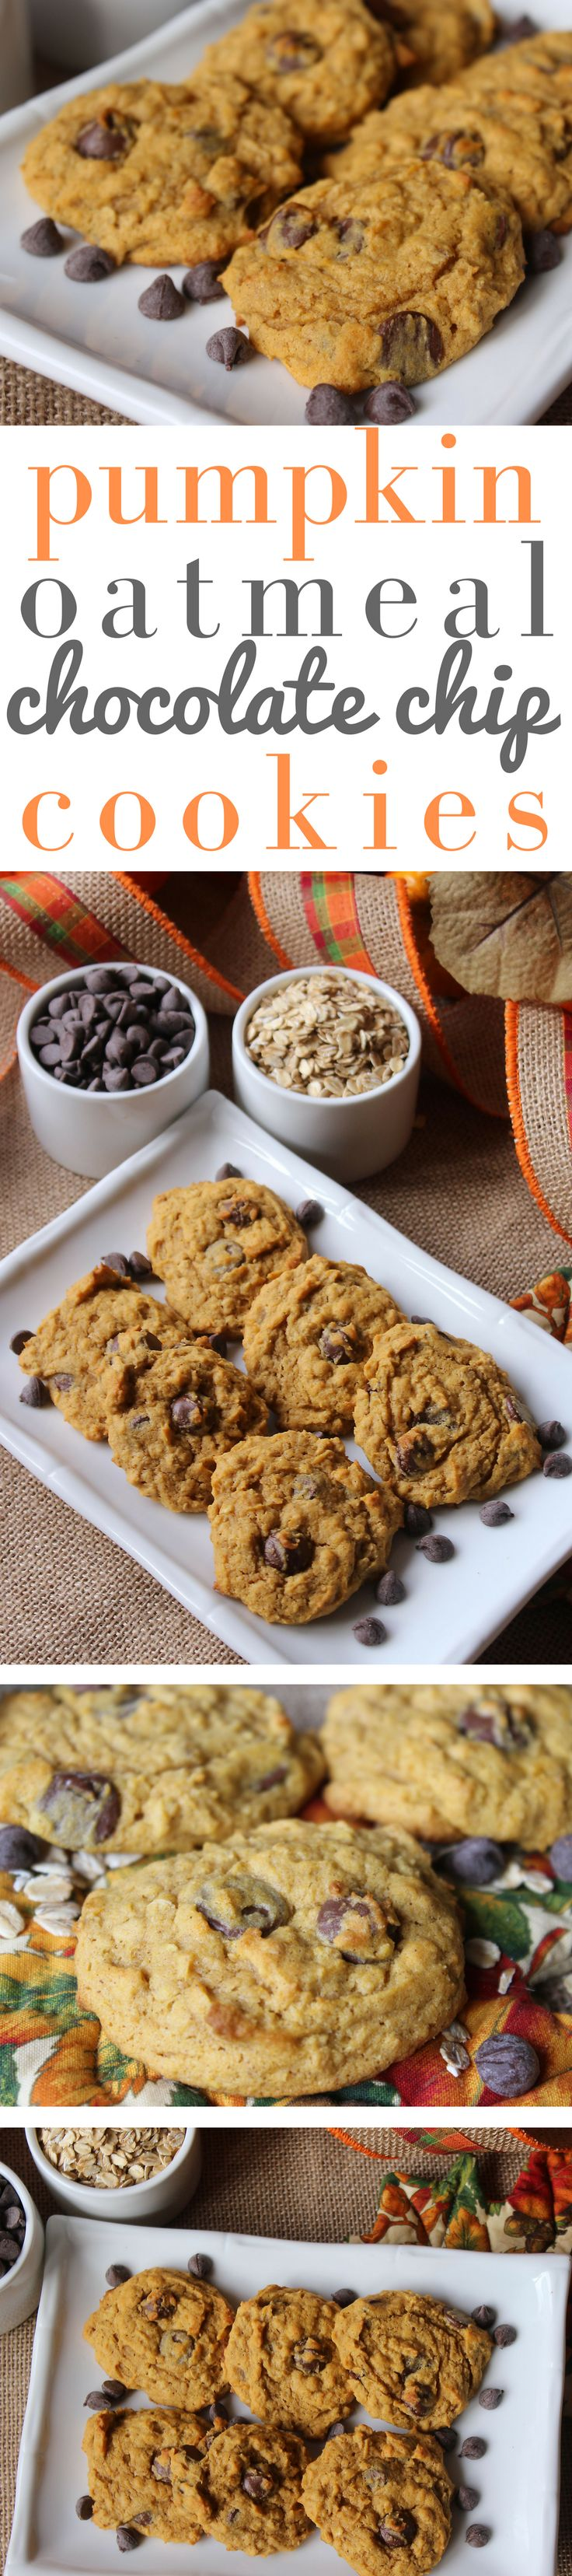 The cookie's soft and delicate with a slight pumpkin flavor. It doesn't have the typical pumpkin spices, just cinnamon. Oats add a little texture and chocolate chips are a great compliment to the pumpkin flavor.